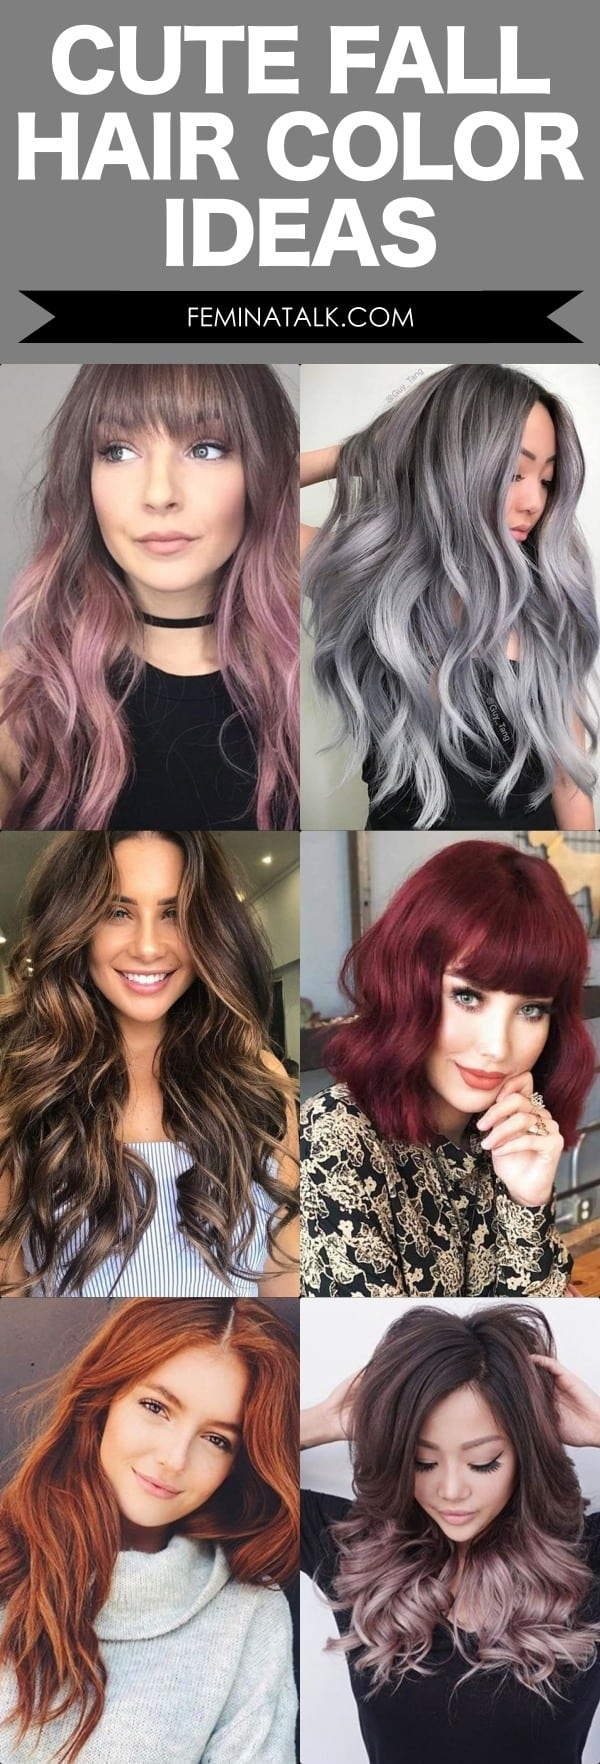 Cute Fall Hair Color Ideas